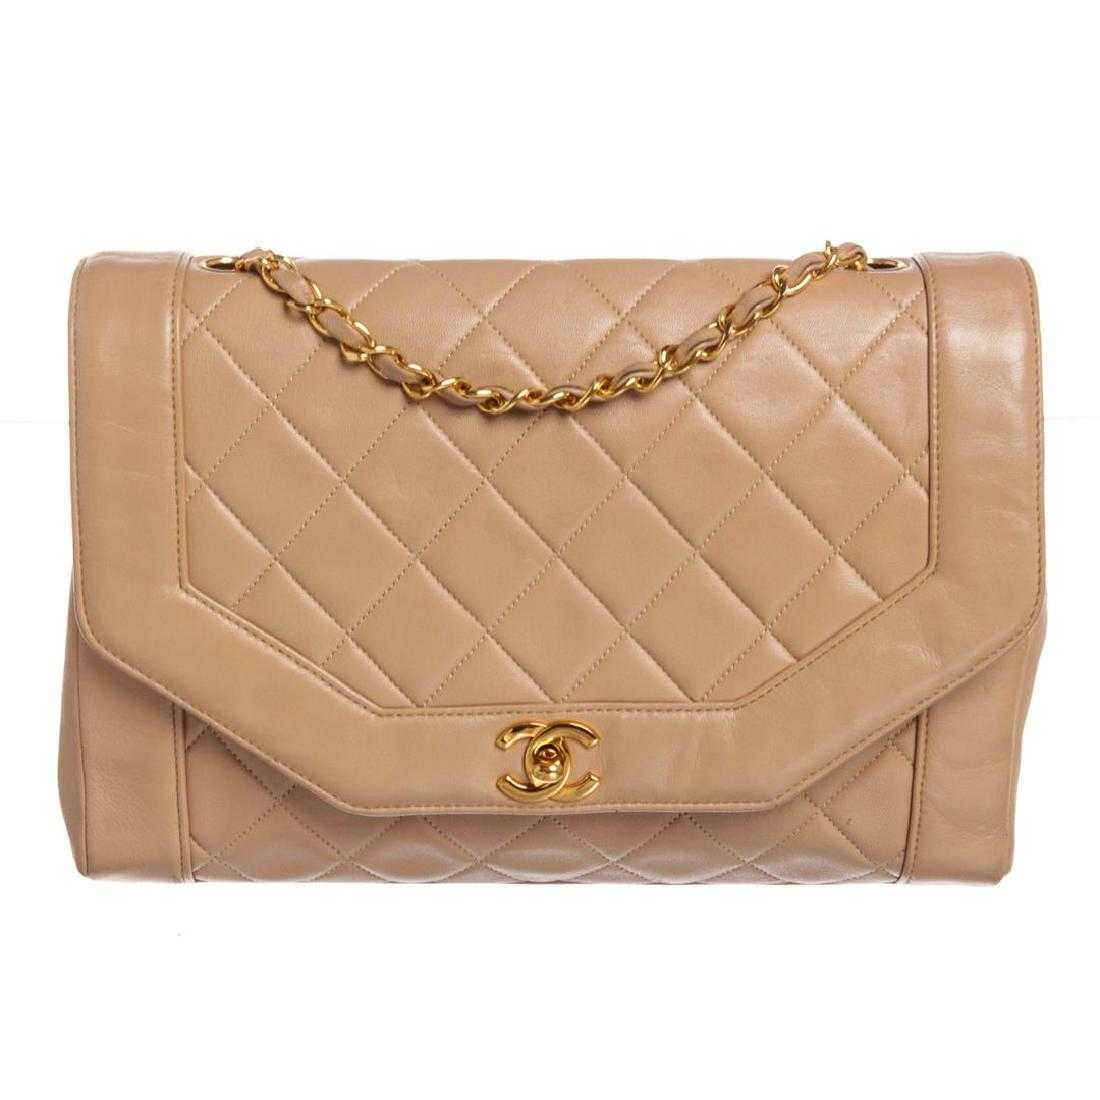 8f8b9239feb8c4 Chanel Beige Lambskin Leather Quilted Large Flap Bag